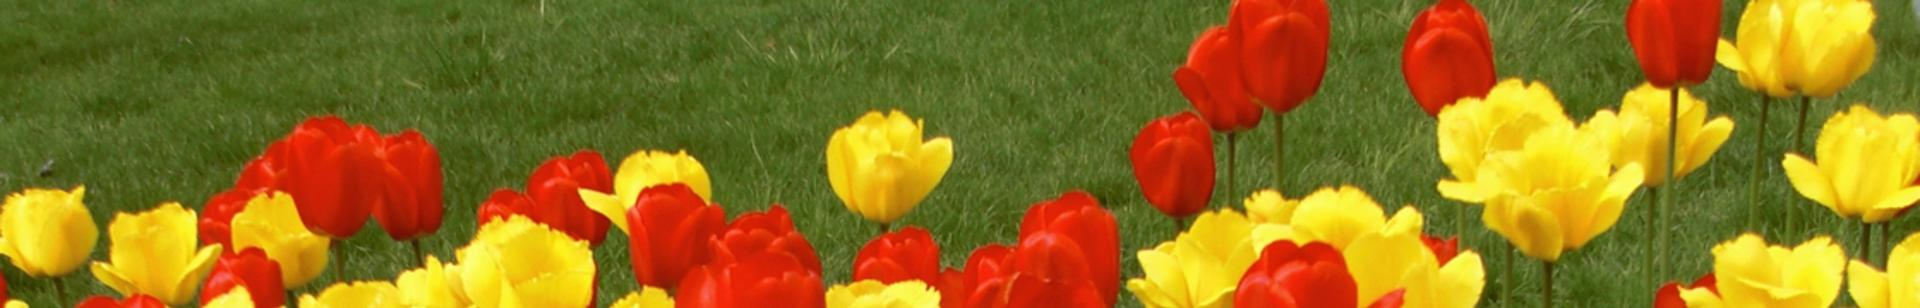 Tight shot of field of red and yellow tulips.